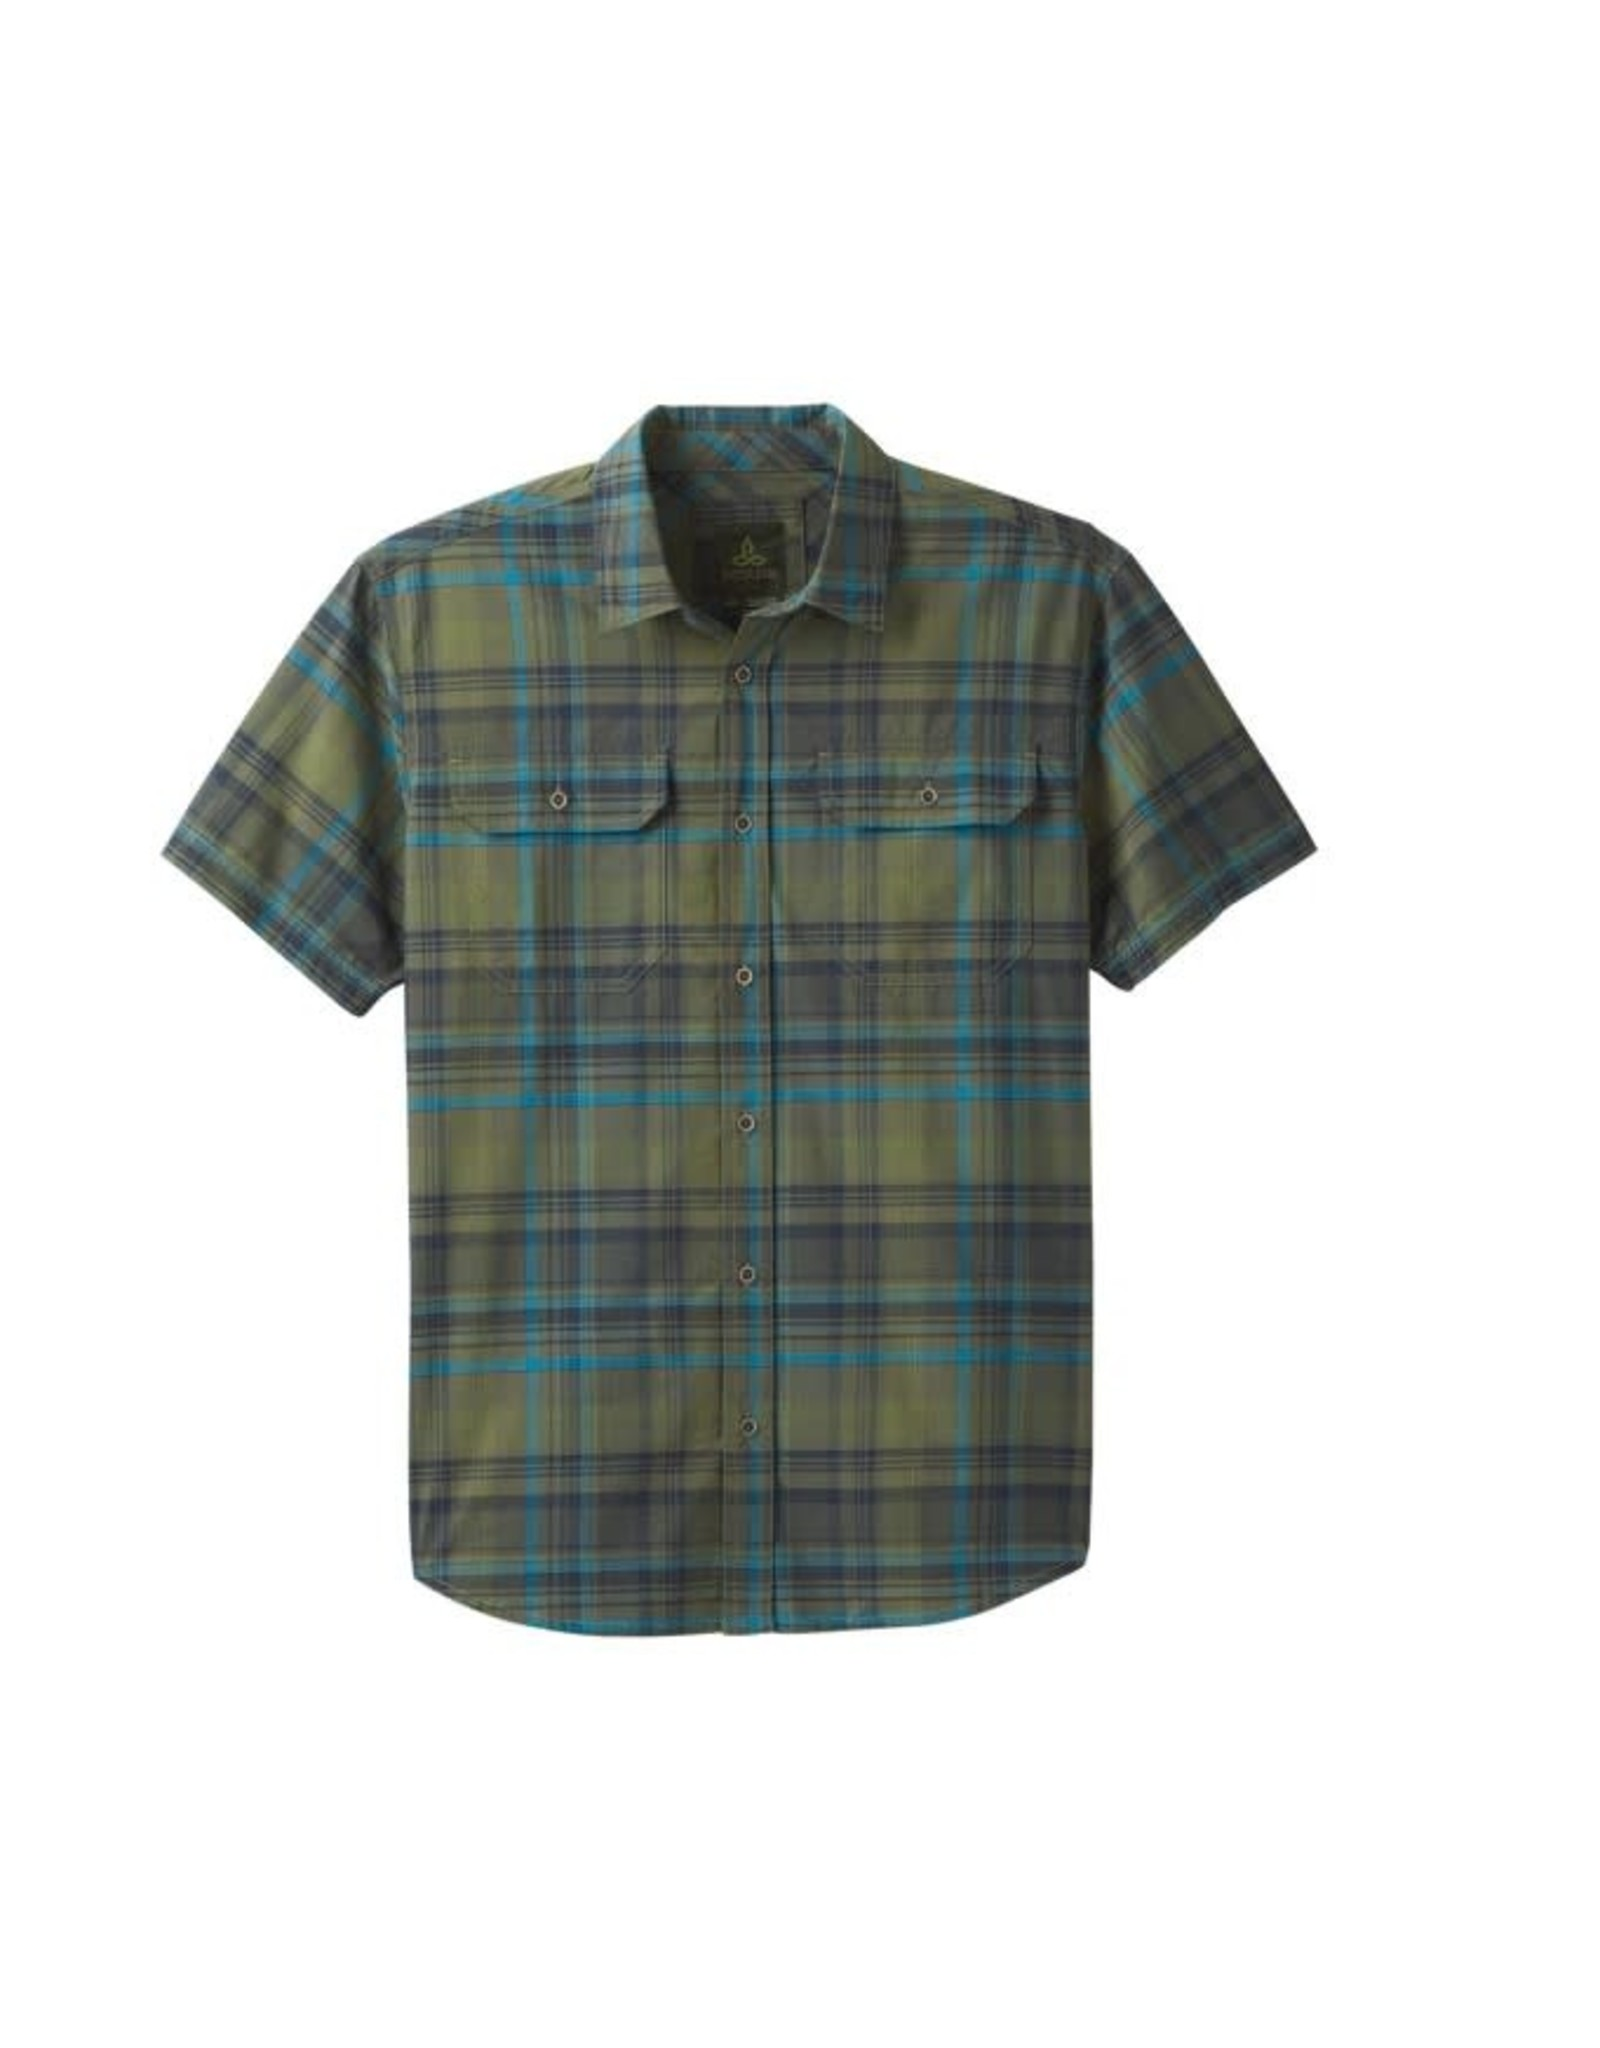 Prana Prana Cayman Plaid Shirt